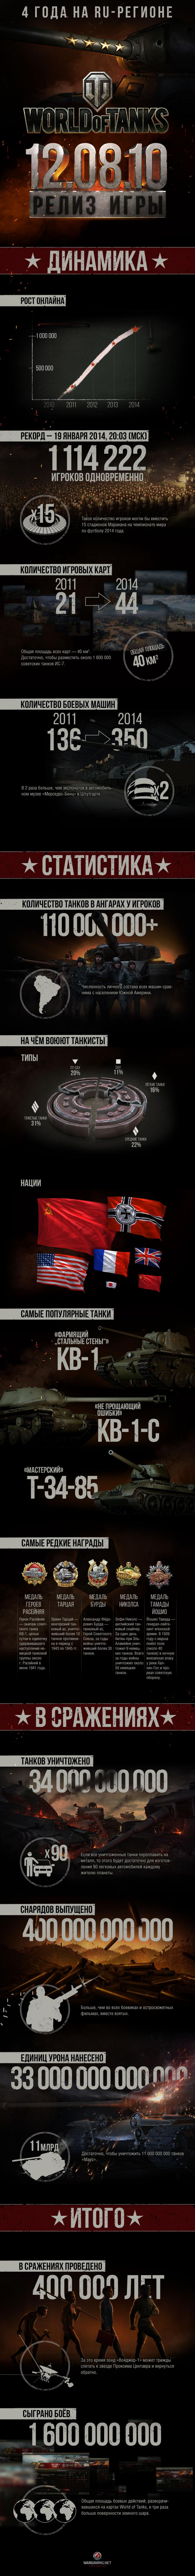 инфографика world of tanks